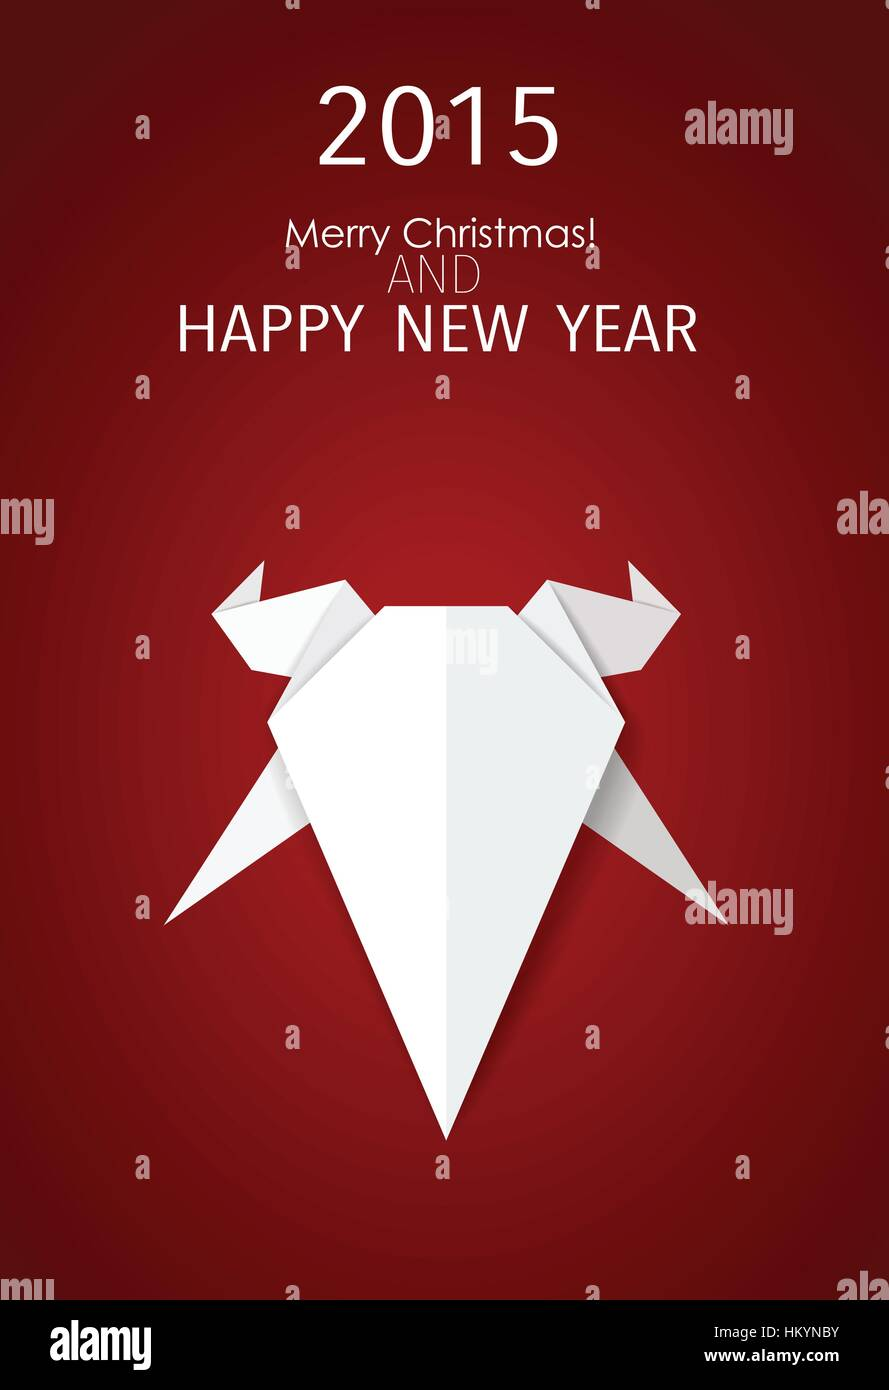 2015 Happy New Year. Year of Goat. Vector illustration. - Stock Image